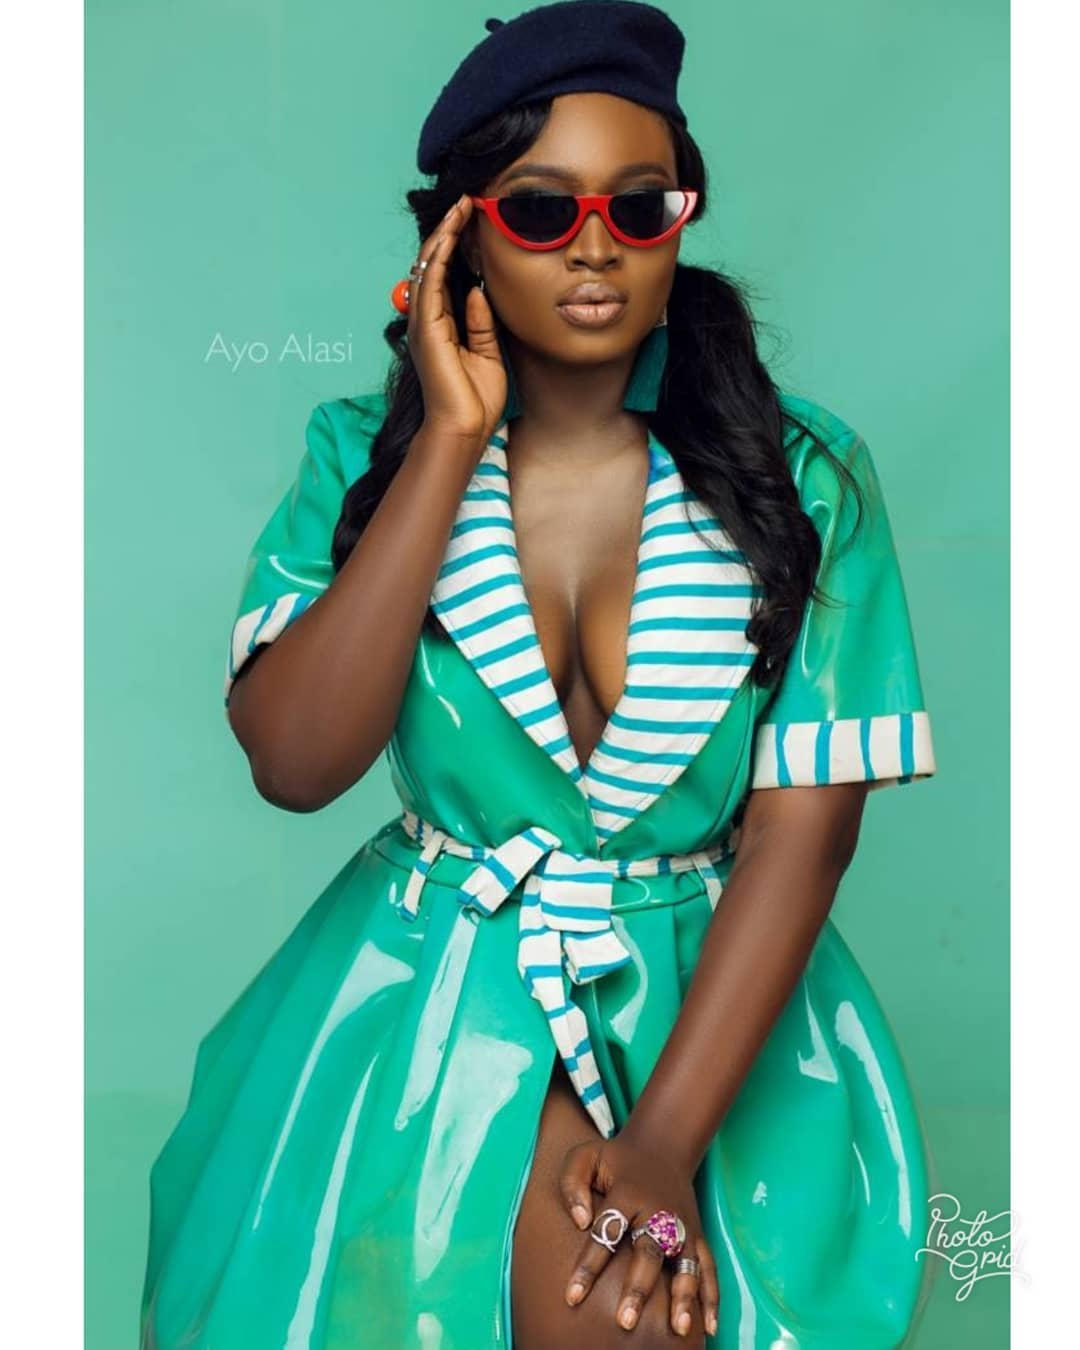 Actresses Who 'bleach' Have Nothing To Offer –  Model , Actress Adebimpe Oyebade reveals